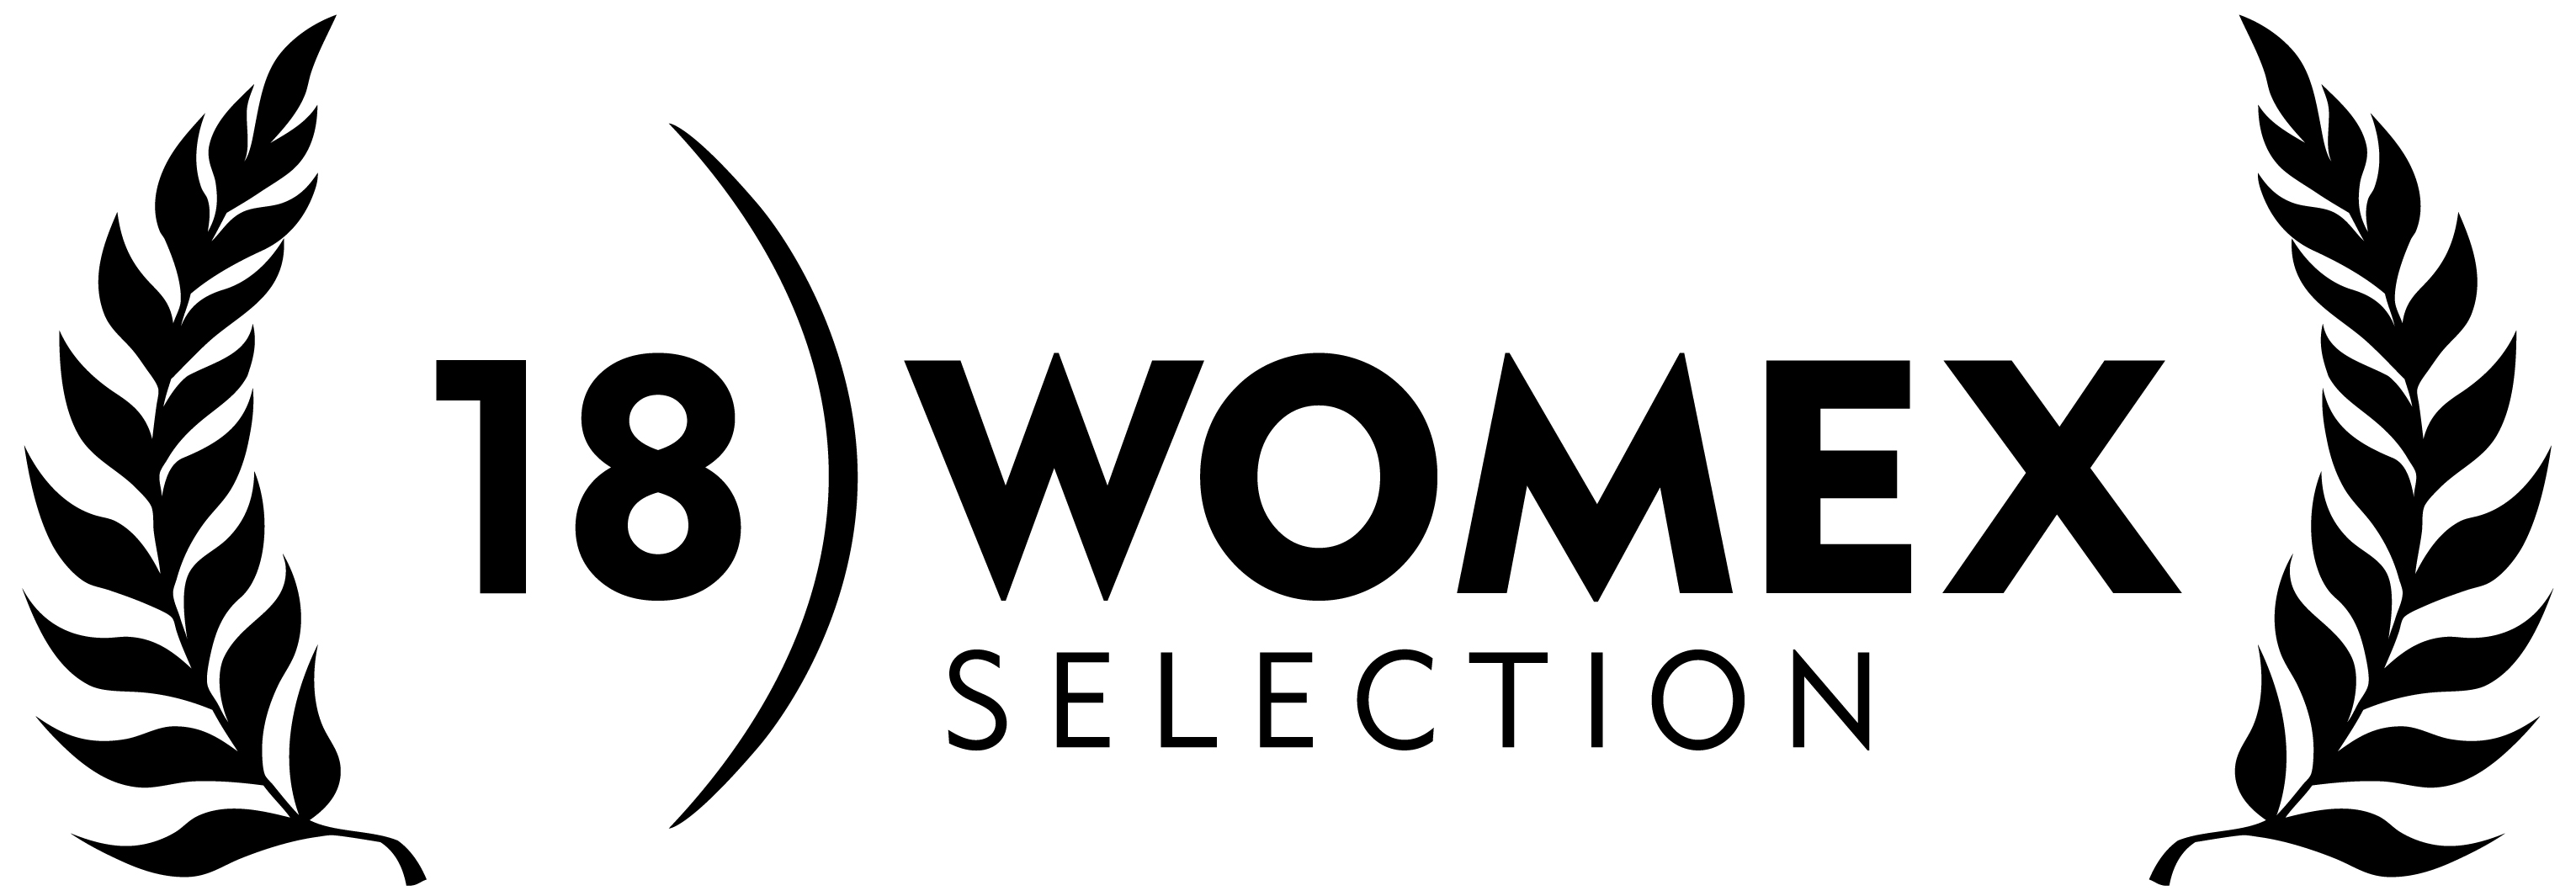 WOMEX_selection_2018_black-01